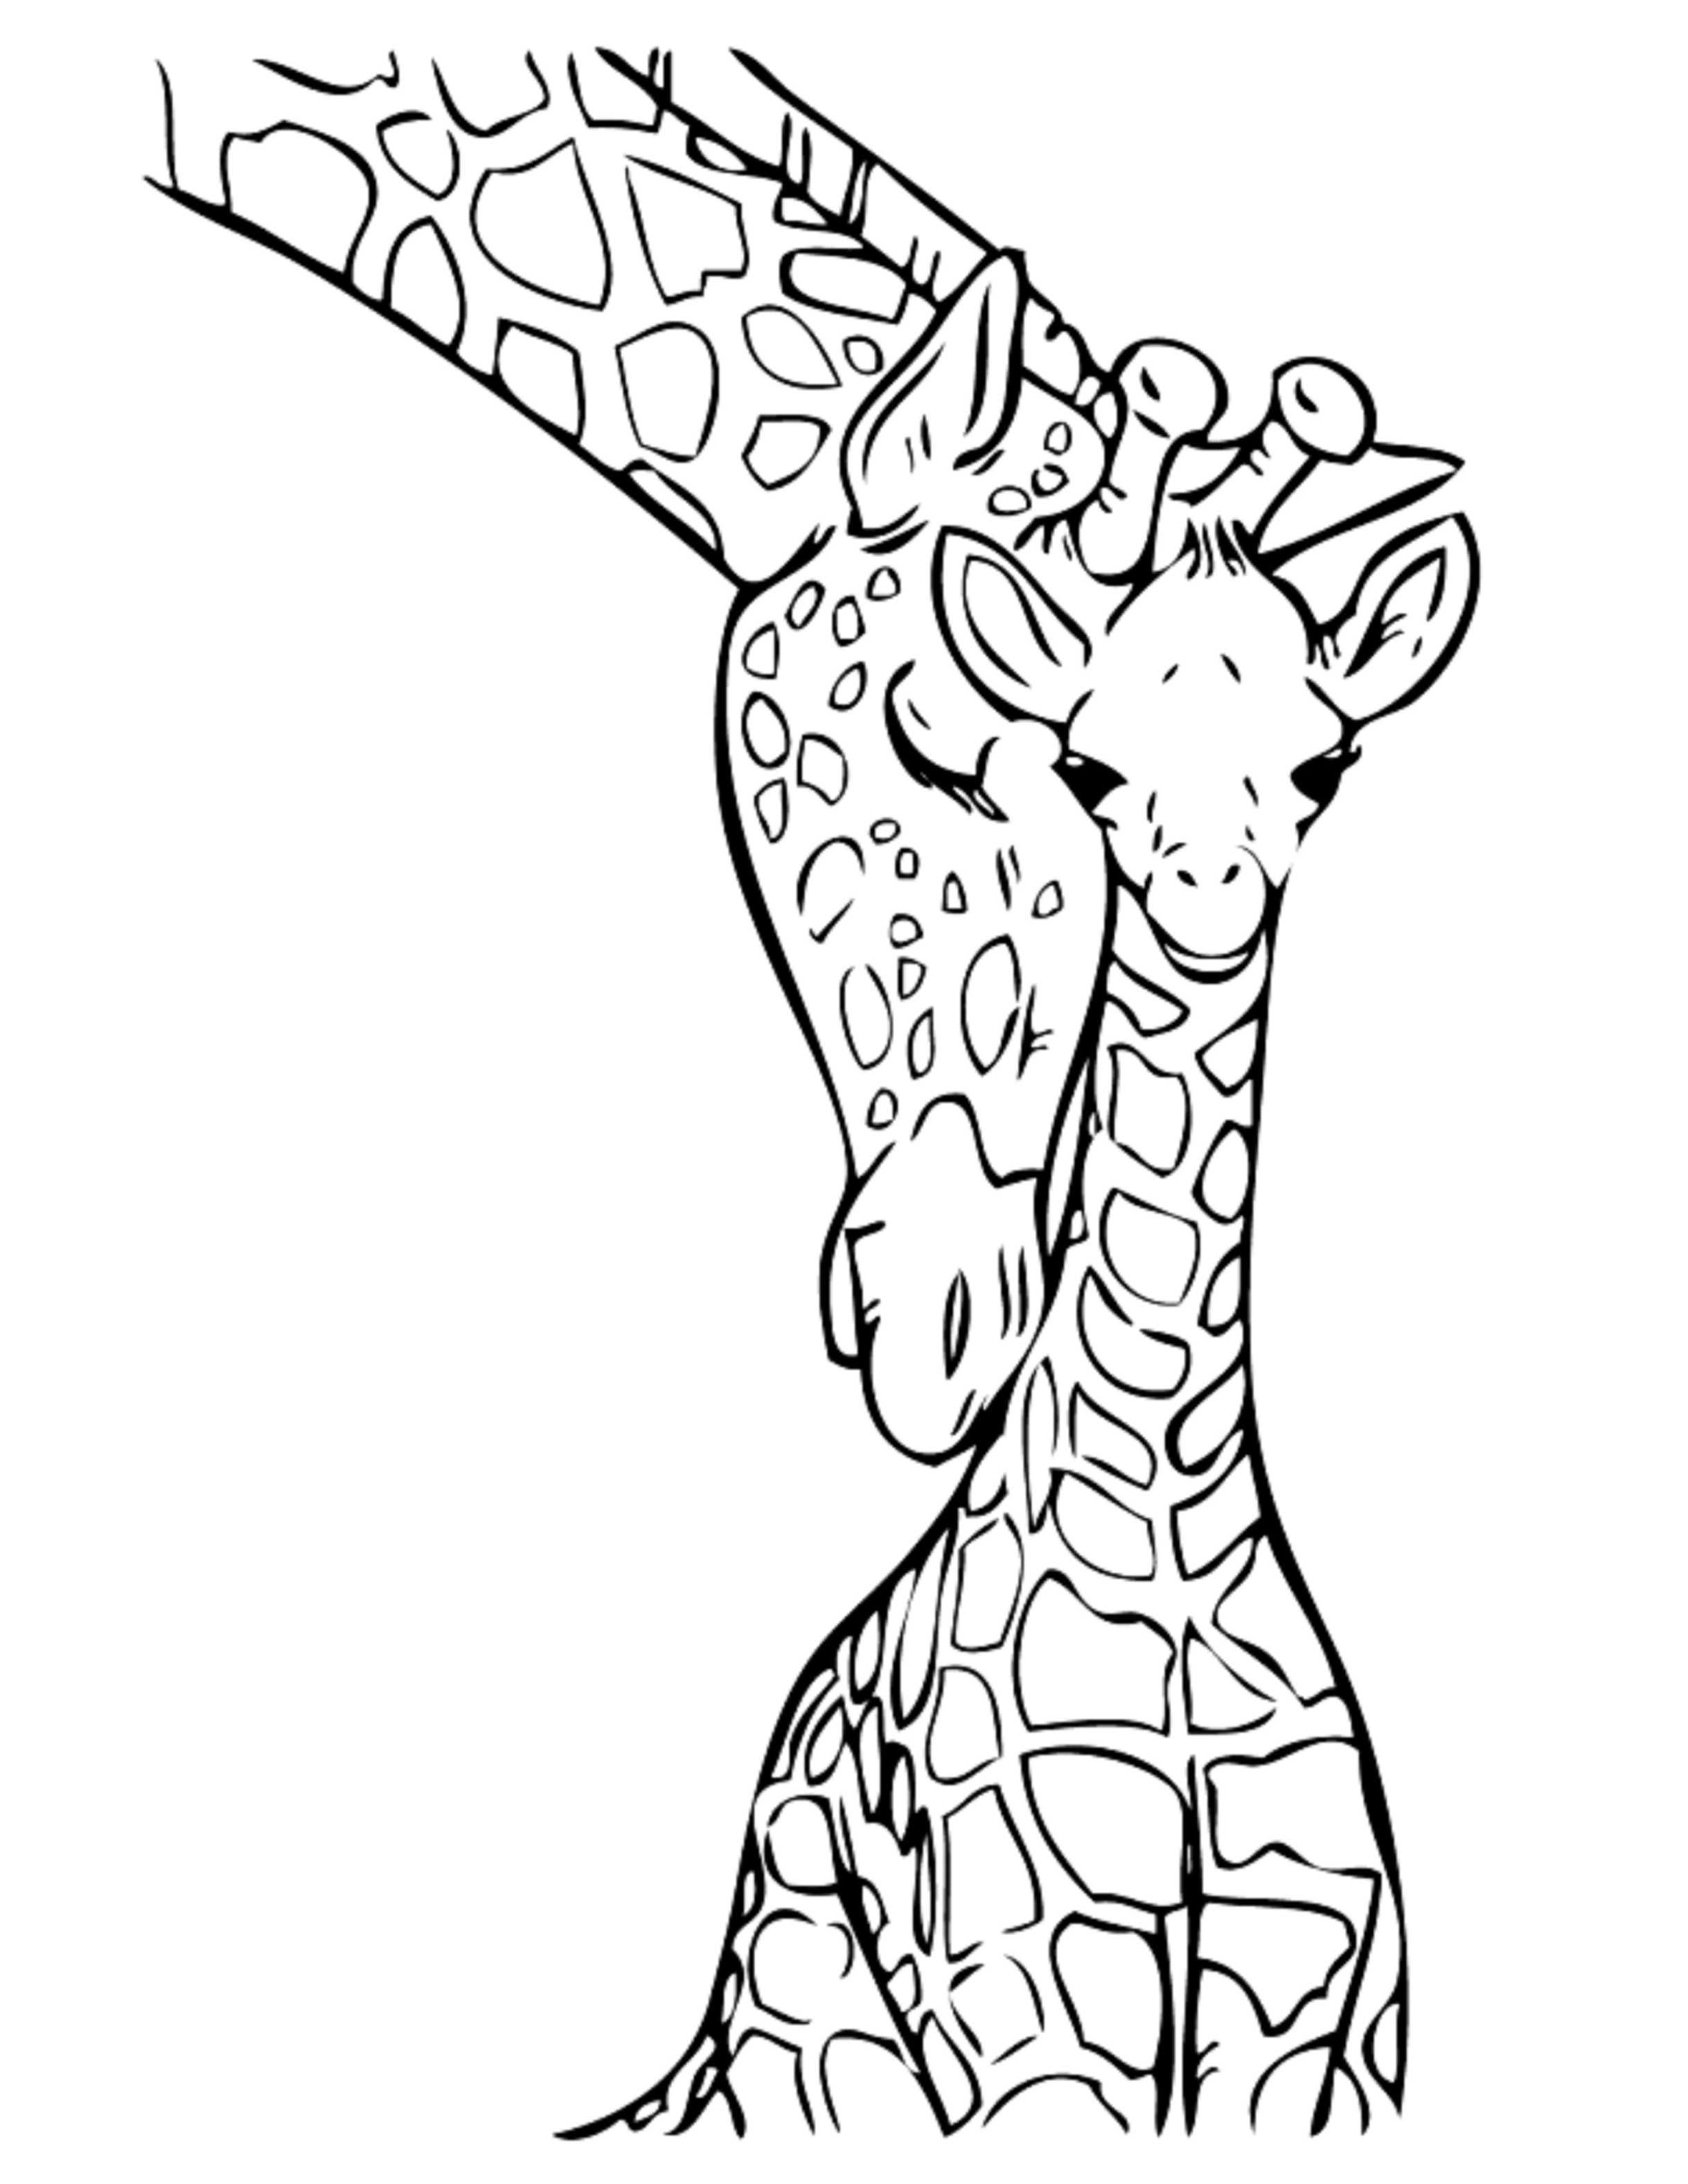 free printable jungle coloring pages jungle coloring pages with images jungle coloring coloring pages jungle free printable